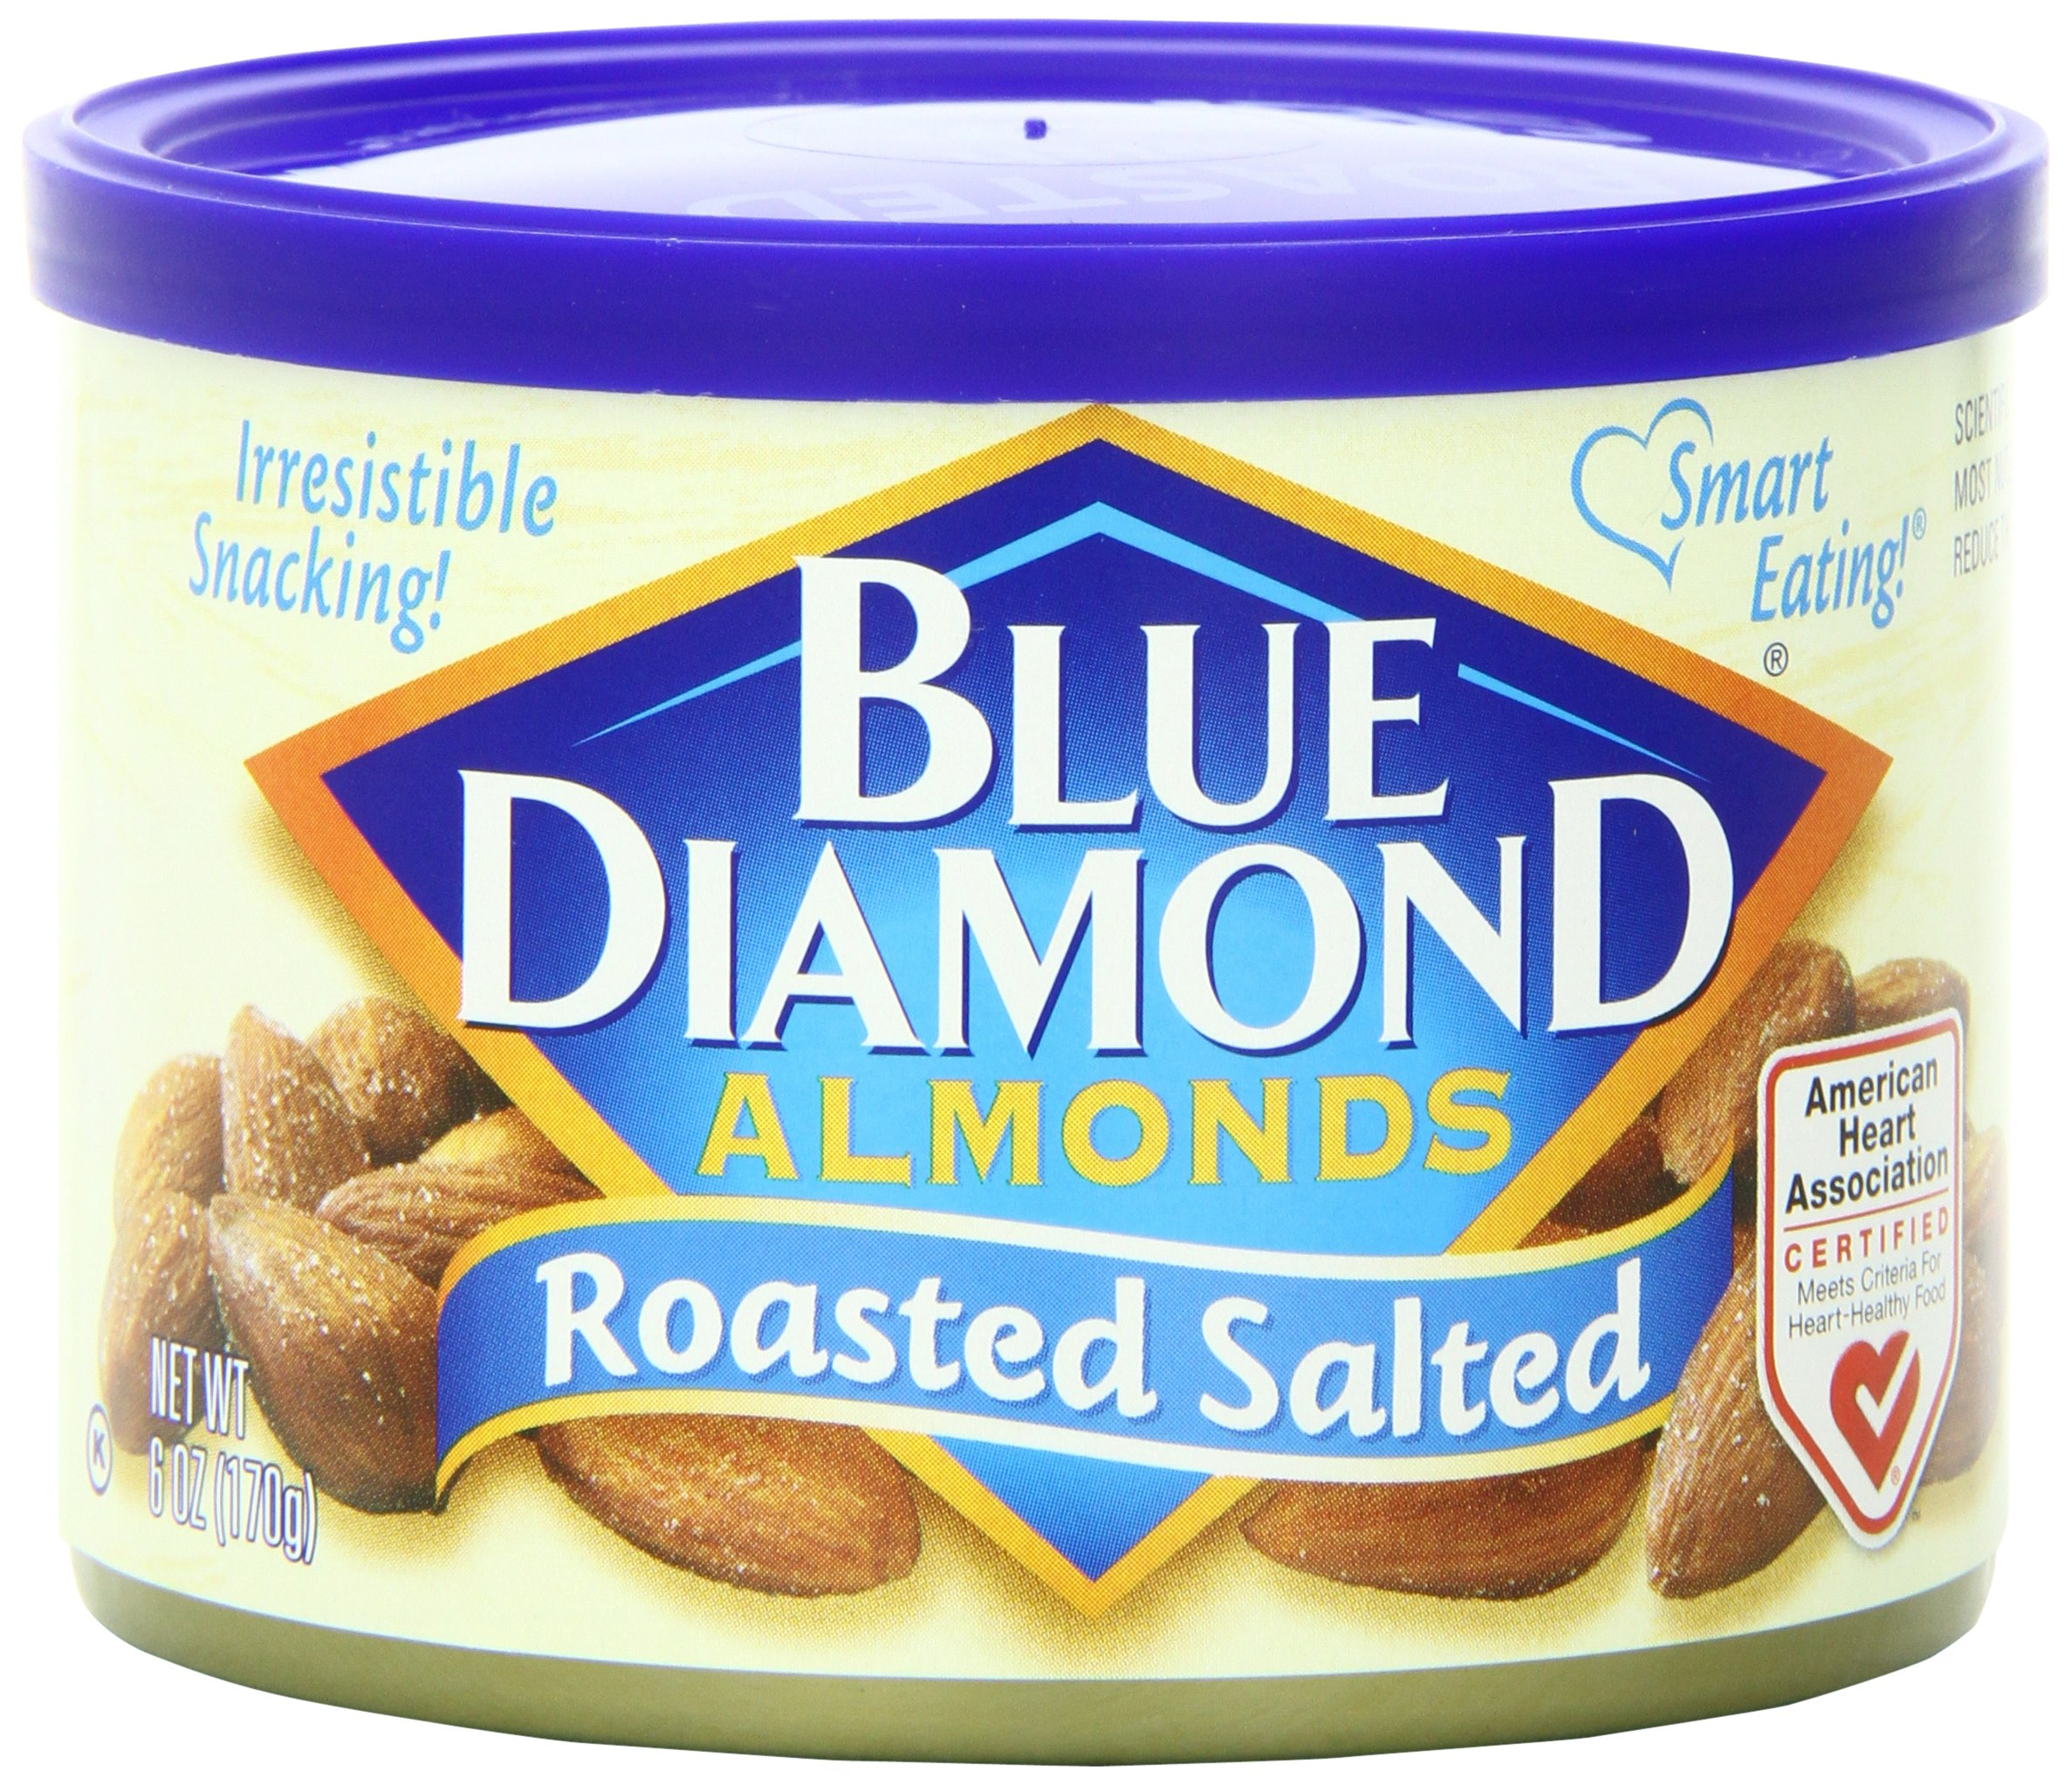 Blue Diamond Almonds, Roasted Salted, 6 Ounce (Pack of 12) by Blue Diamond Almonds (Image #1)